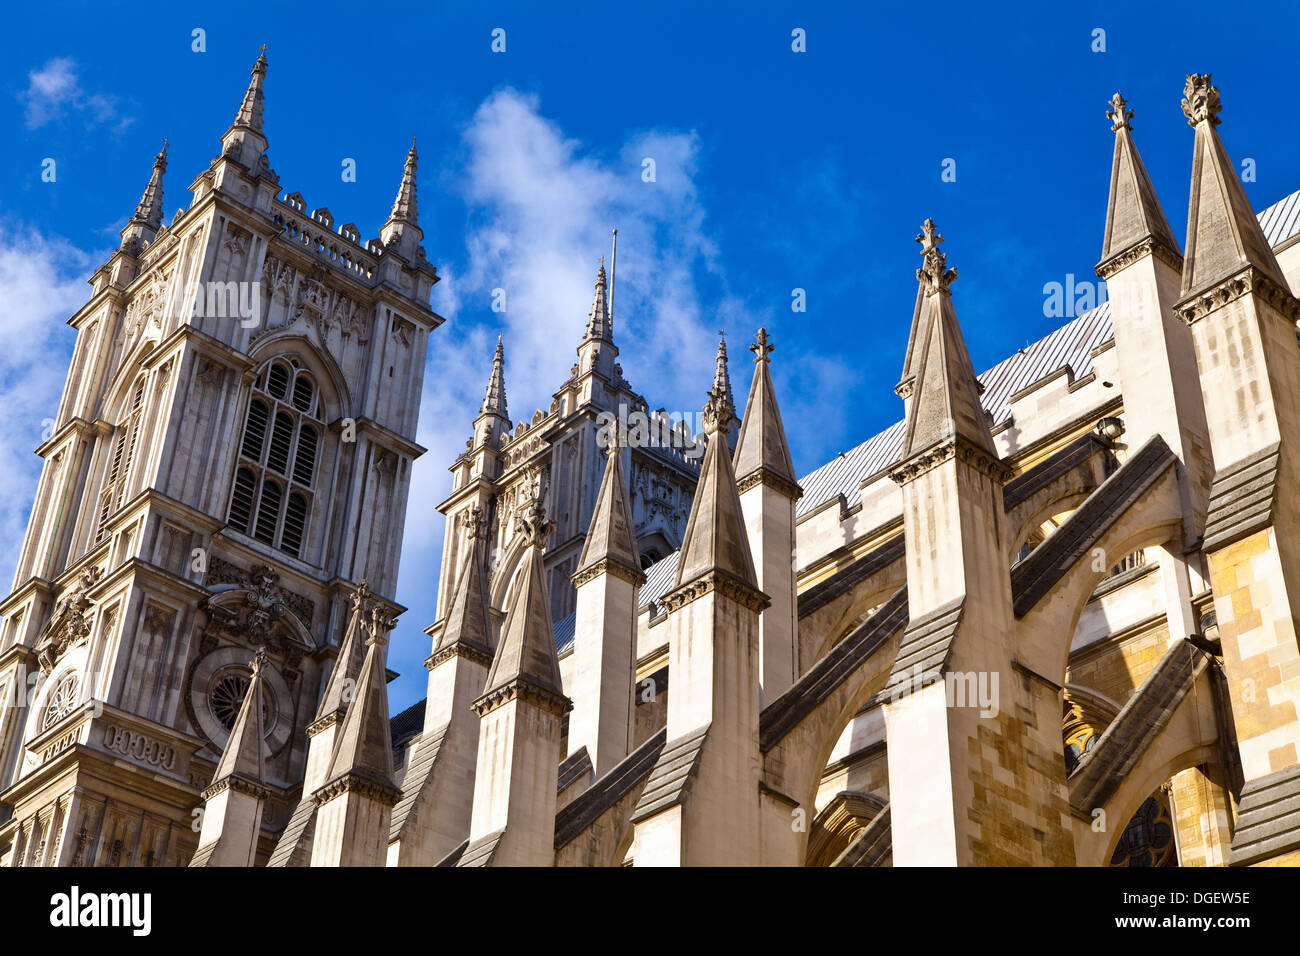 Westminster Abbey in London. - Stock Image